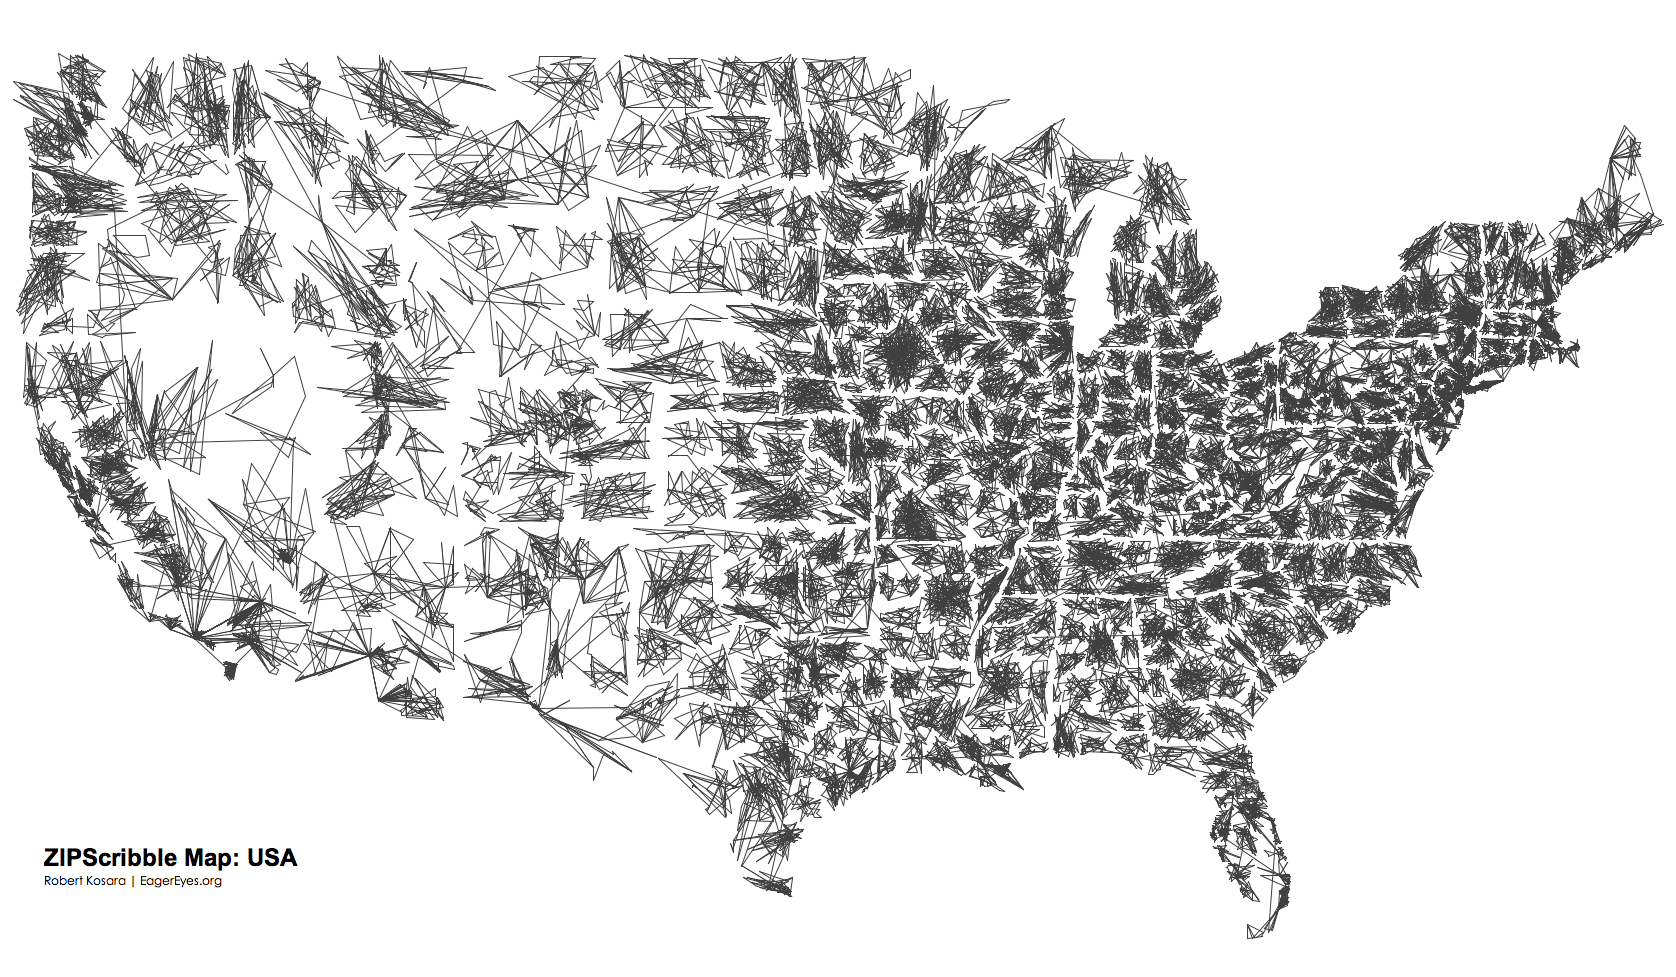 The US ZIPScribble Map Zip Code Map Northeast United States on the new england states of america map, united states postal code, zip codes by state map, united states time zone map, united states state map, united states farming map, united states specialty map, telephone area code map, united states county map, united states is best place to live, united states time zones usa, united states political map capitals, united states area code map, united states town map, united states province map,